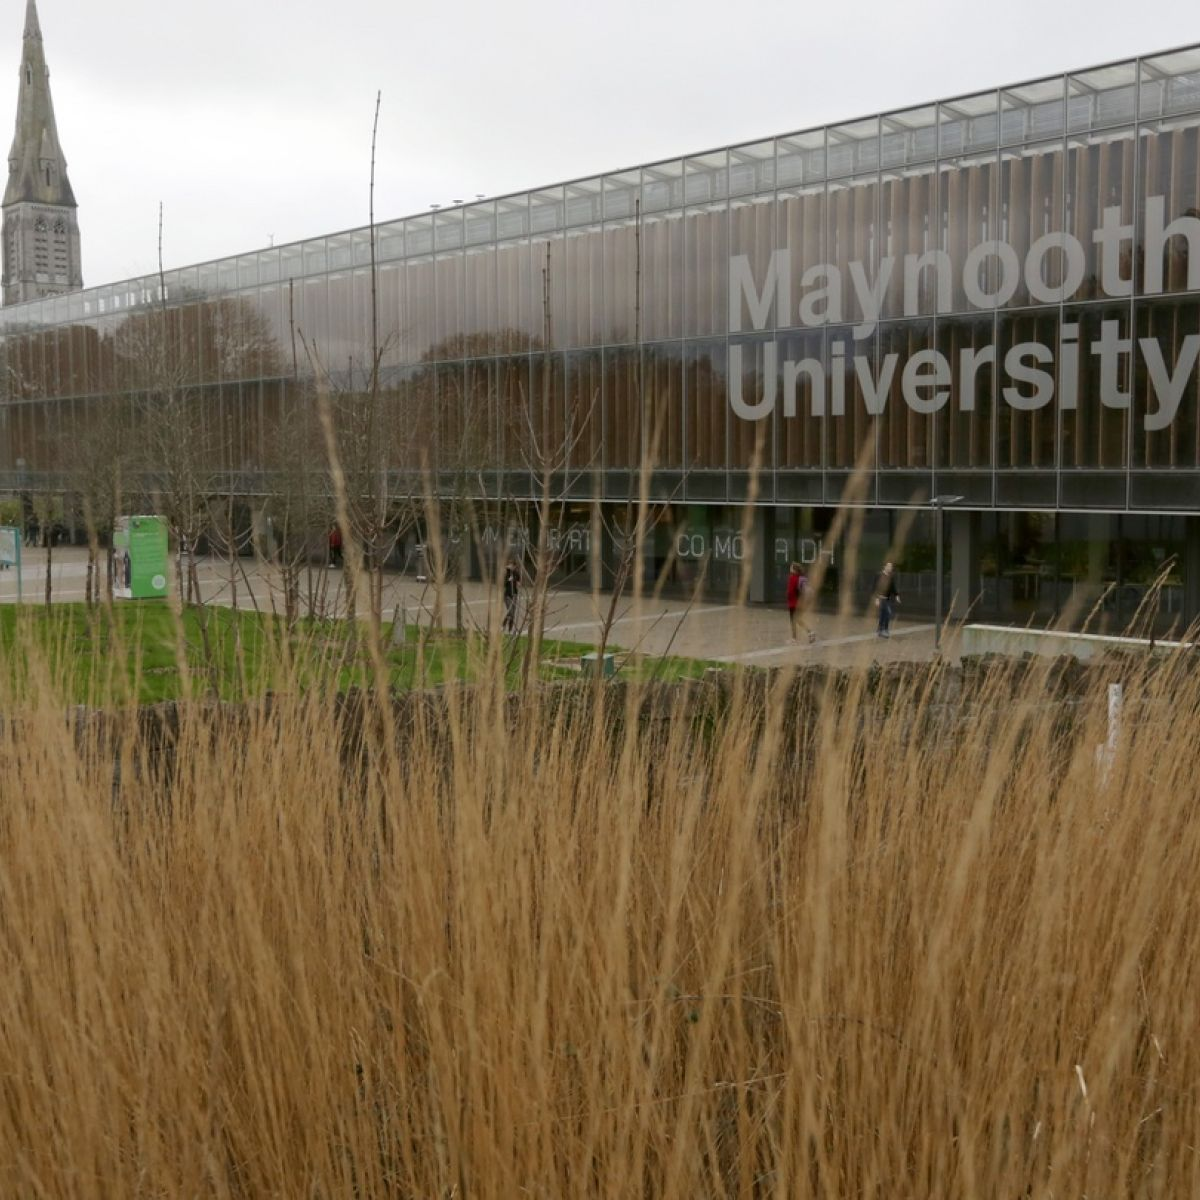 Laurence Cox | Maynooth University